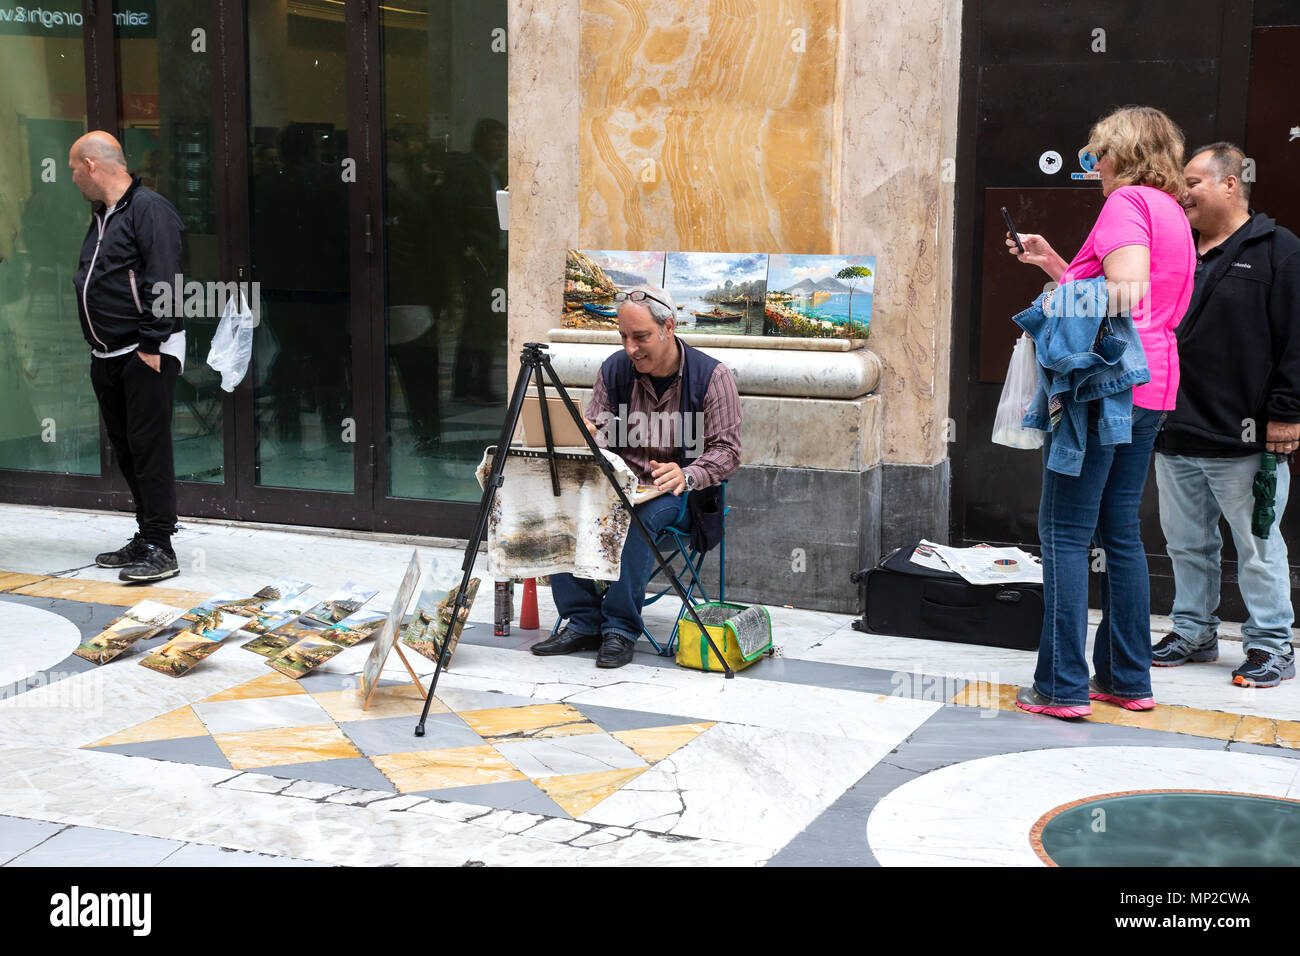 A street artist selling his work in the Galleria Umberto in Naples, Italy - Stock Image